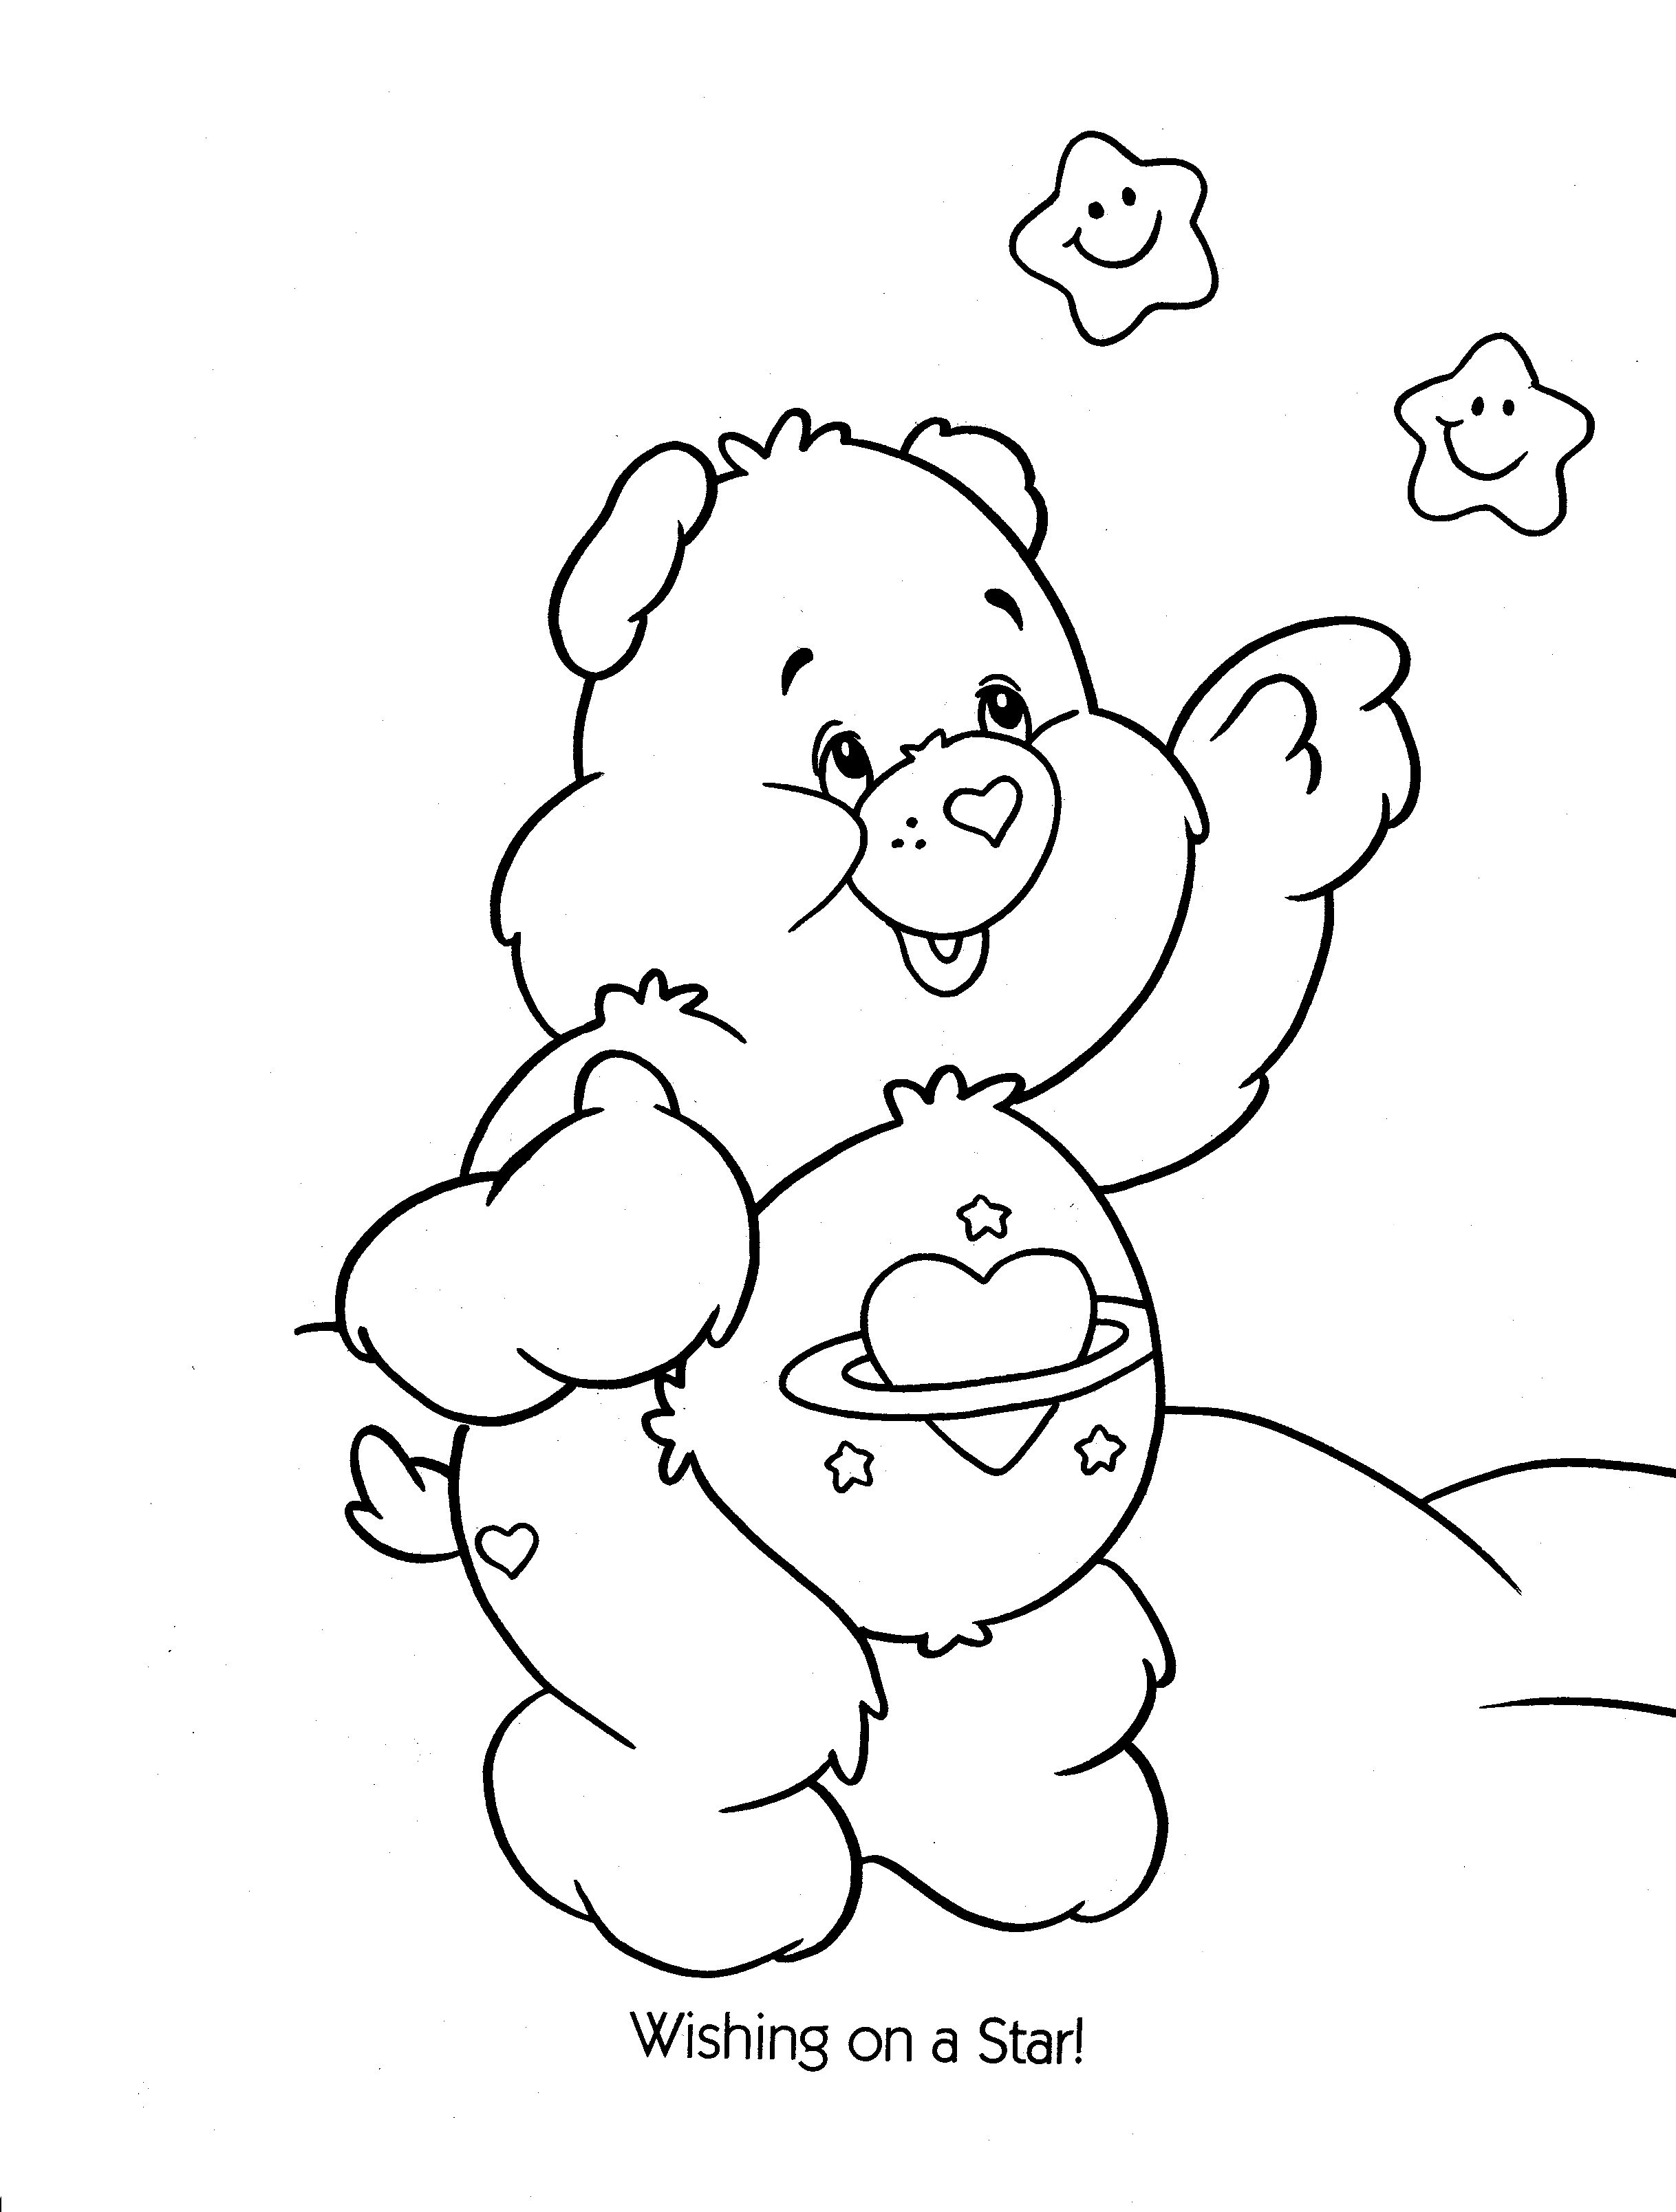 Orsetti del cuore immagini da colorare for Care bears coloring pages